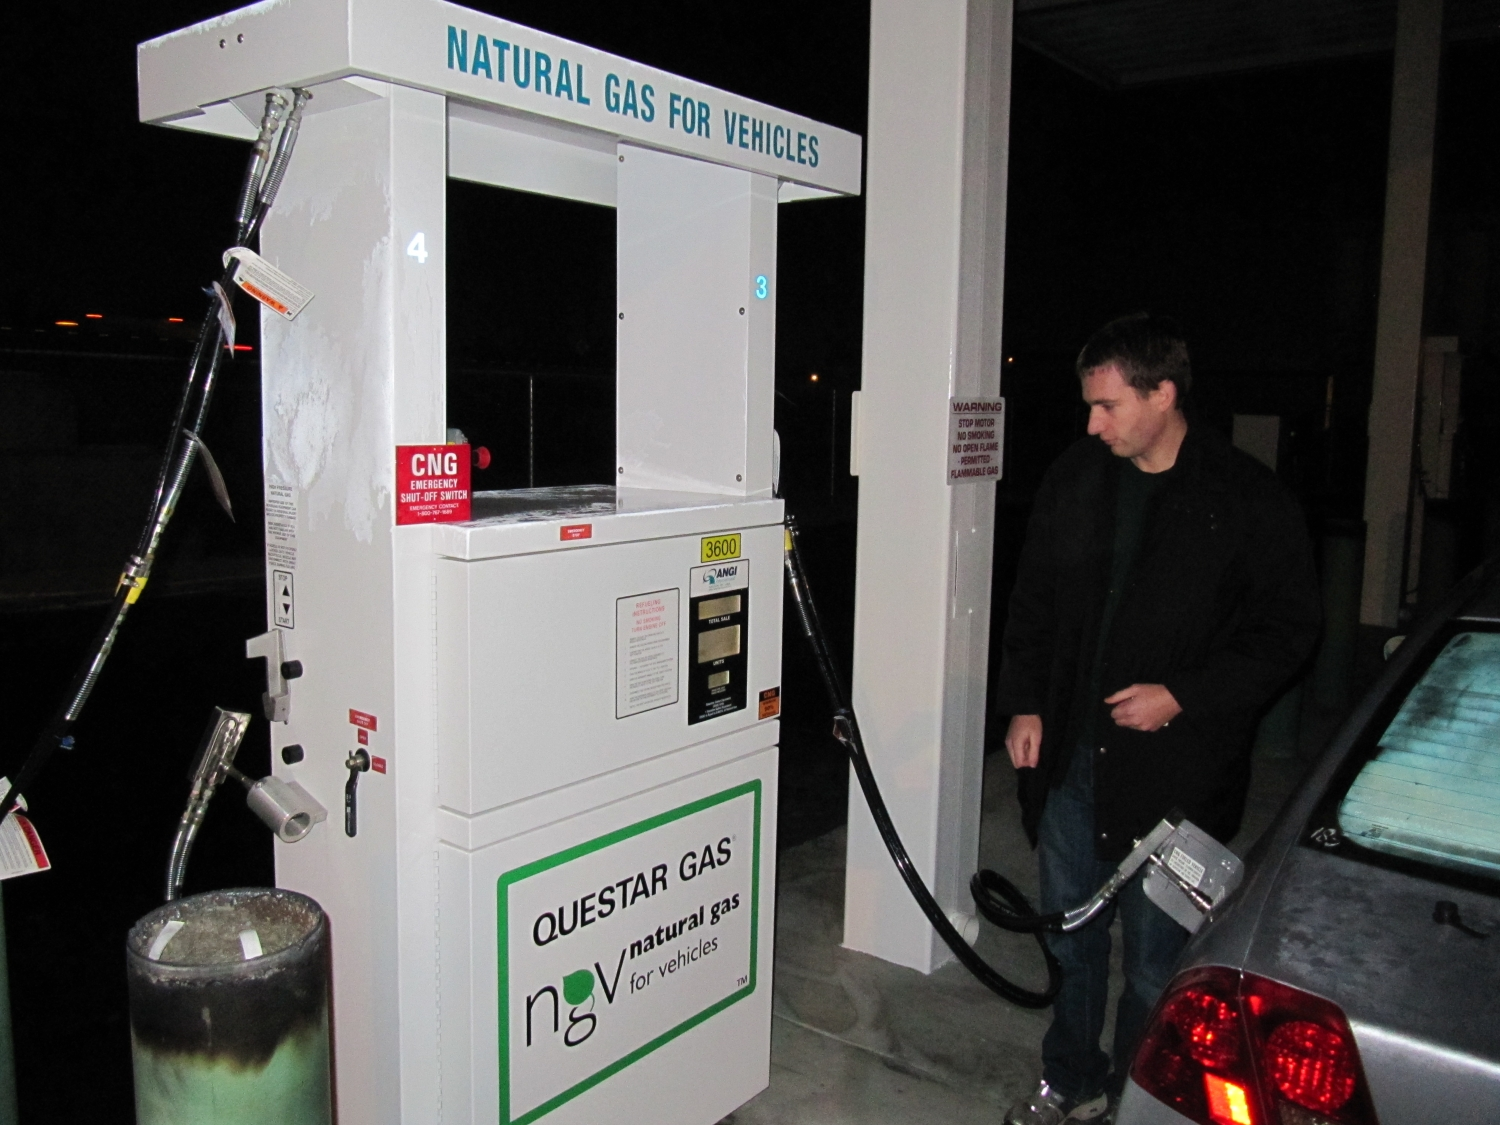 CNG Station in Kaysville